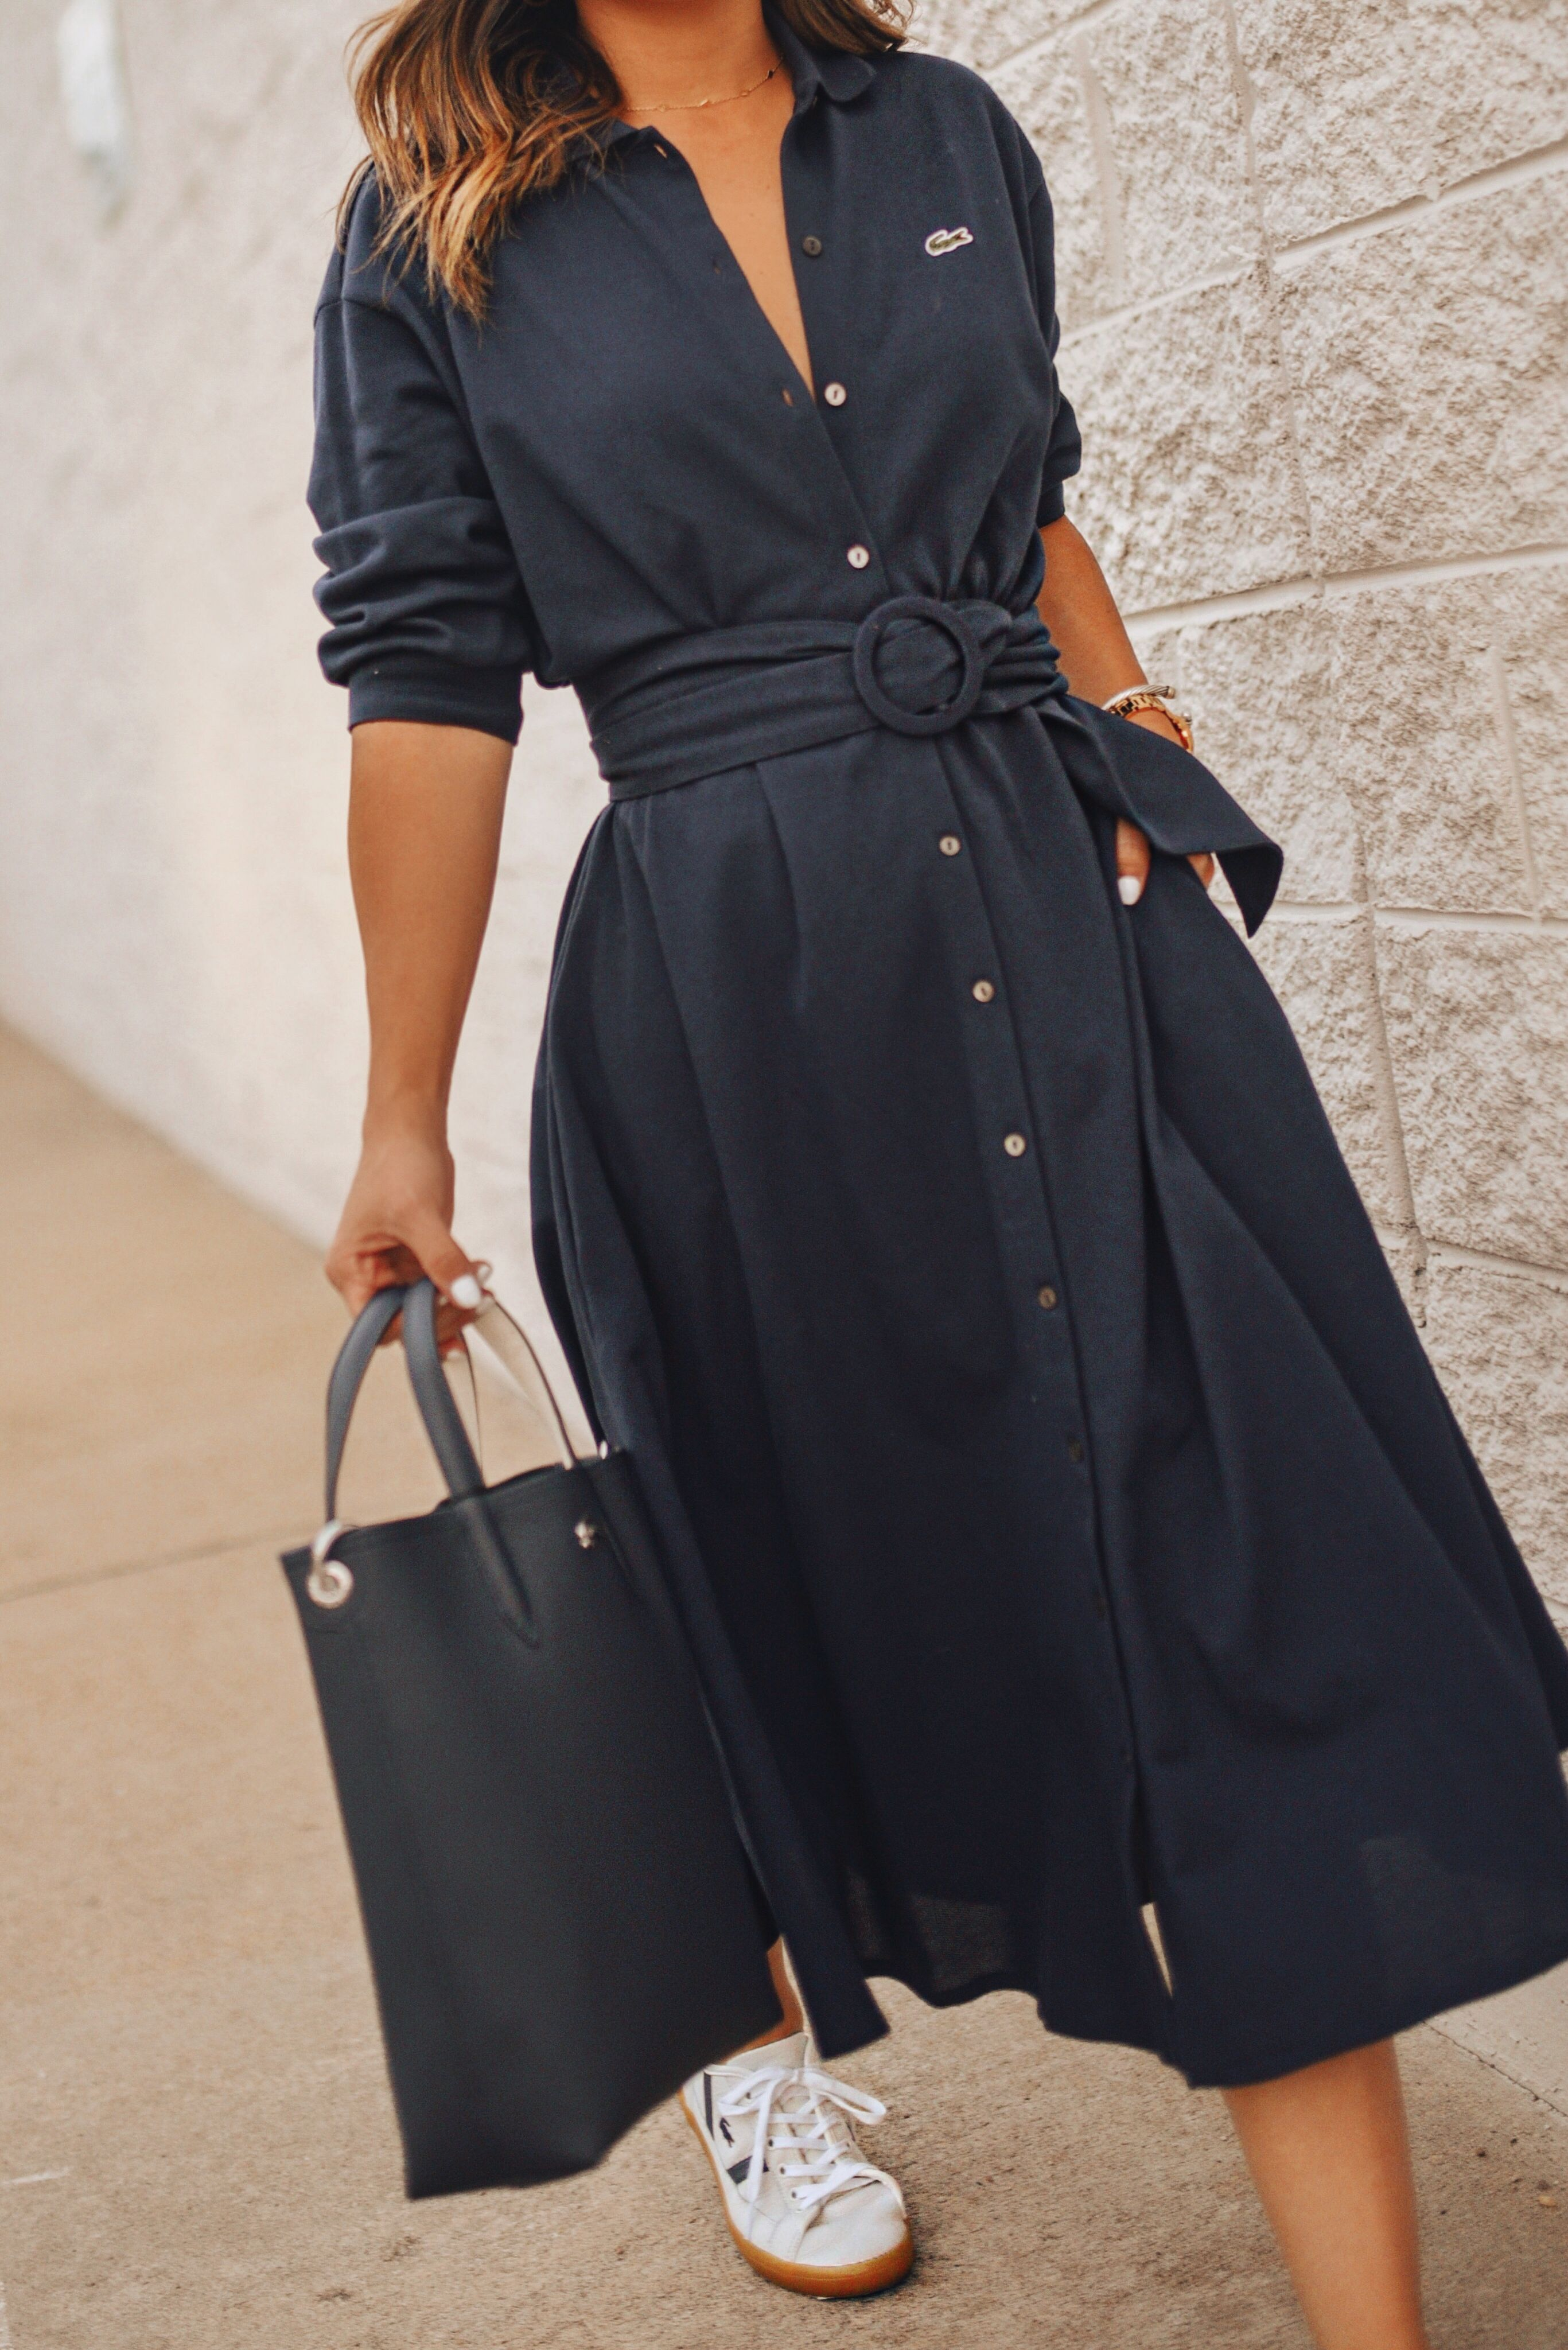 The shirtdress every woman needs in her closet | Lacoste shirtdress | shirtdress and white sneakers outfits | white Lacoste shoes | how to wear a shirtdress | shirtdress outfit summer | Denver street style summer | simple shirtdress outfit | Chic Talk #shirtdress #lacoste